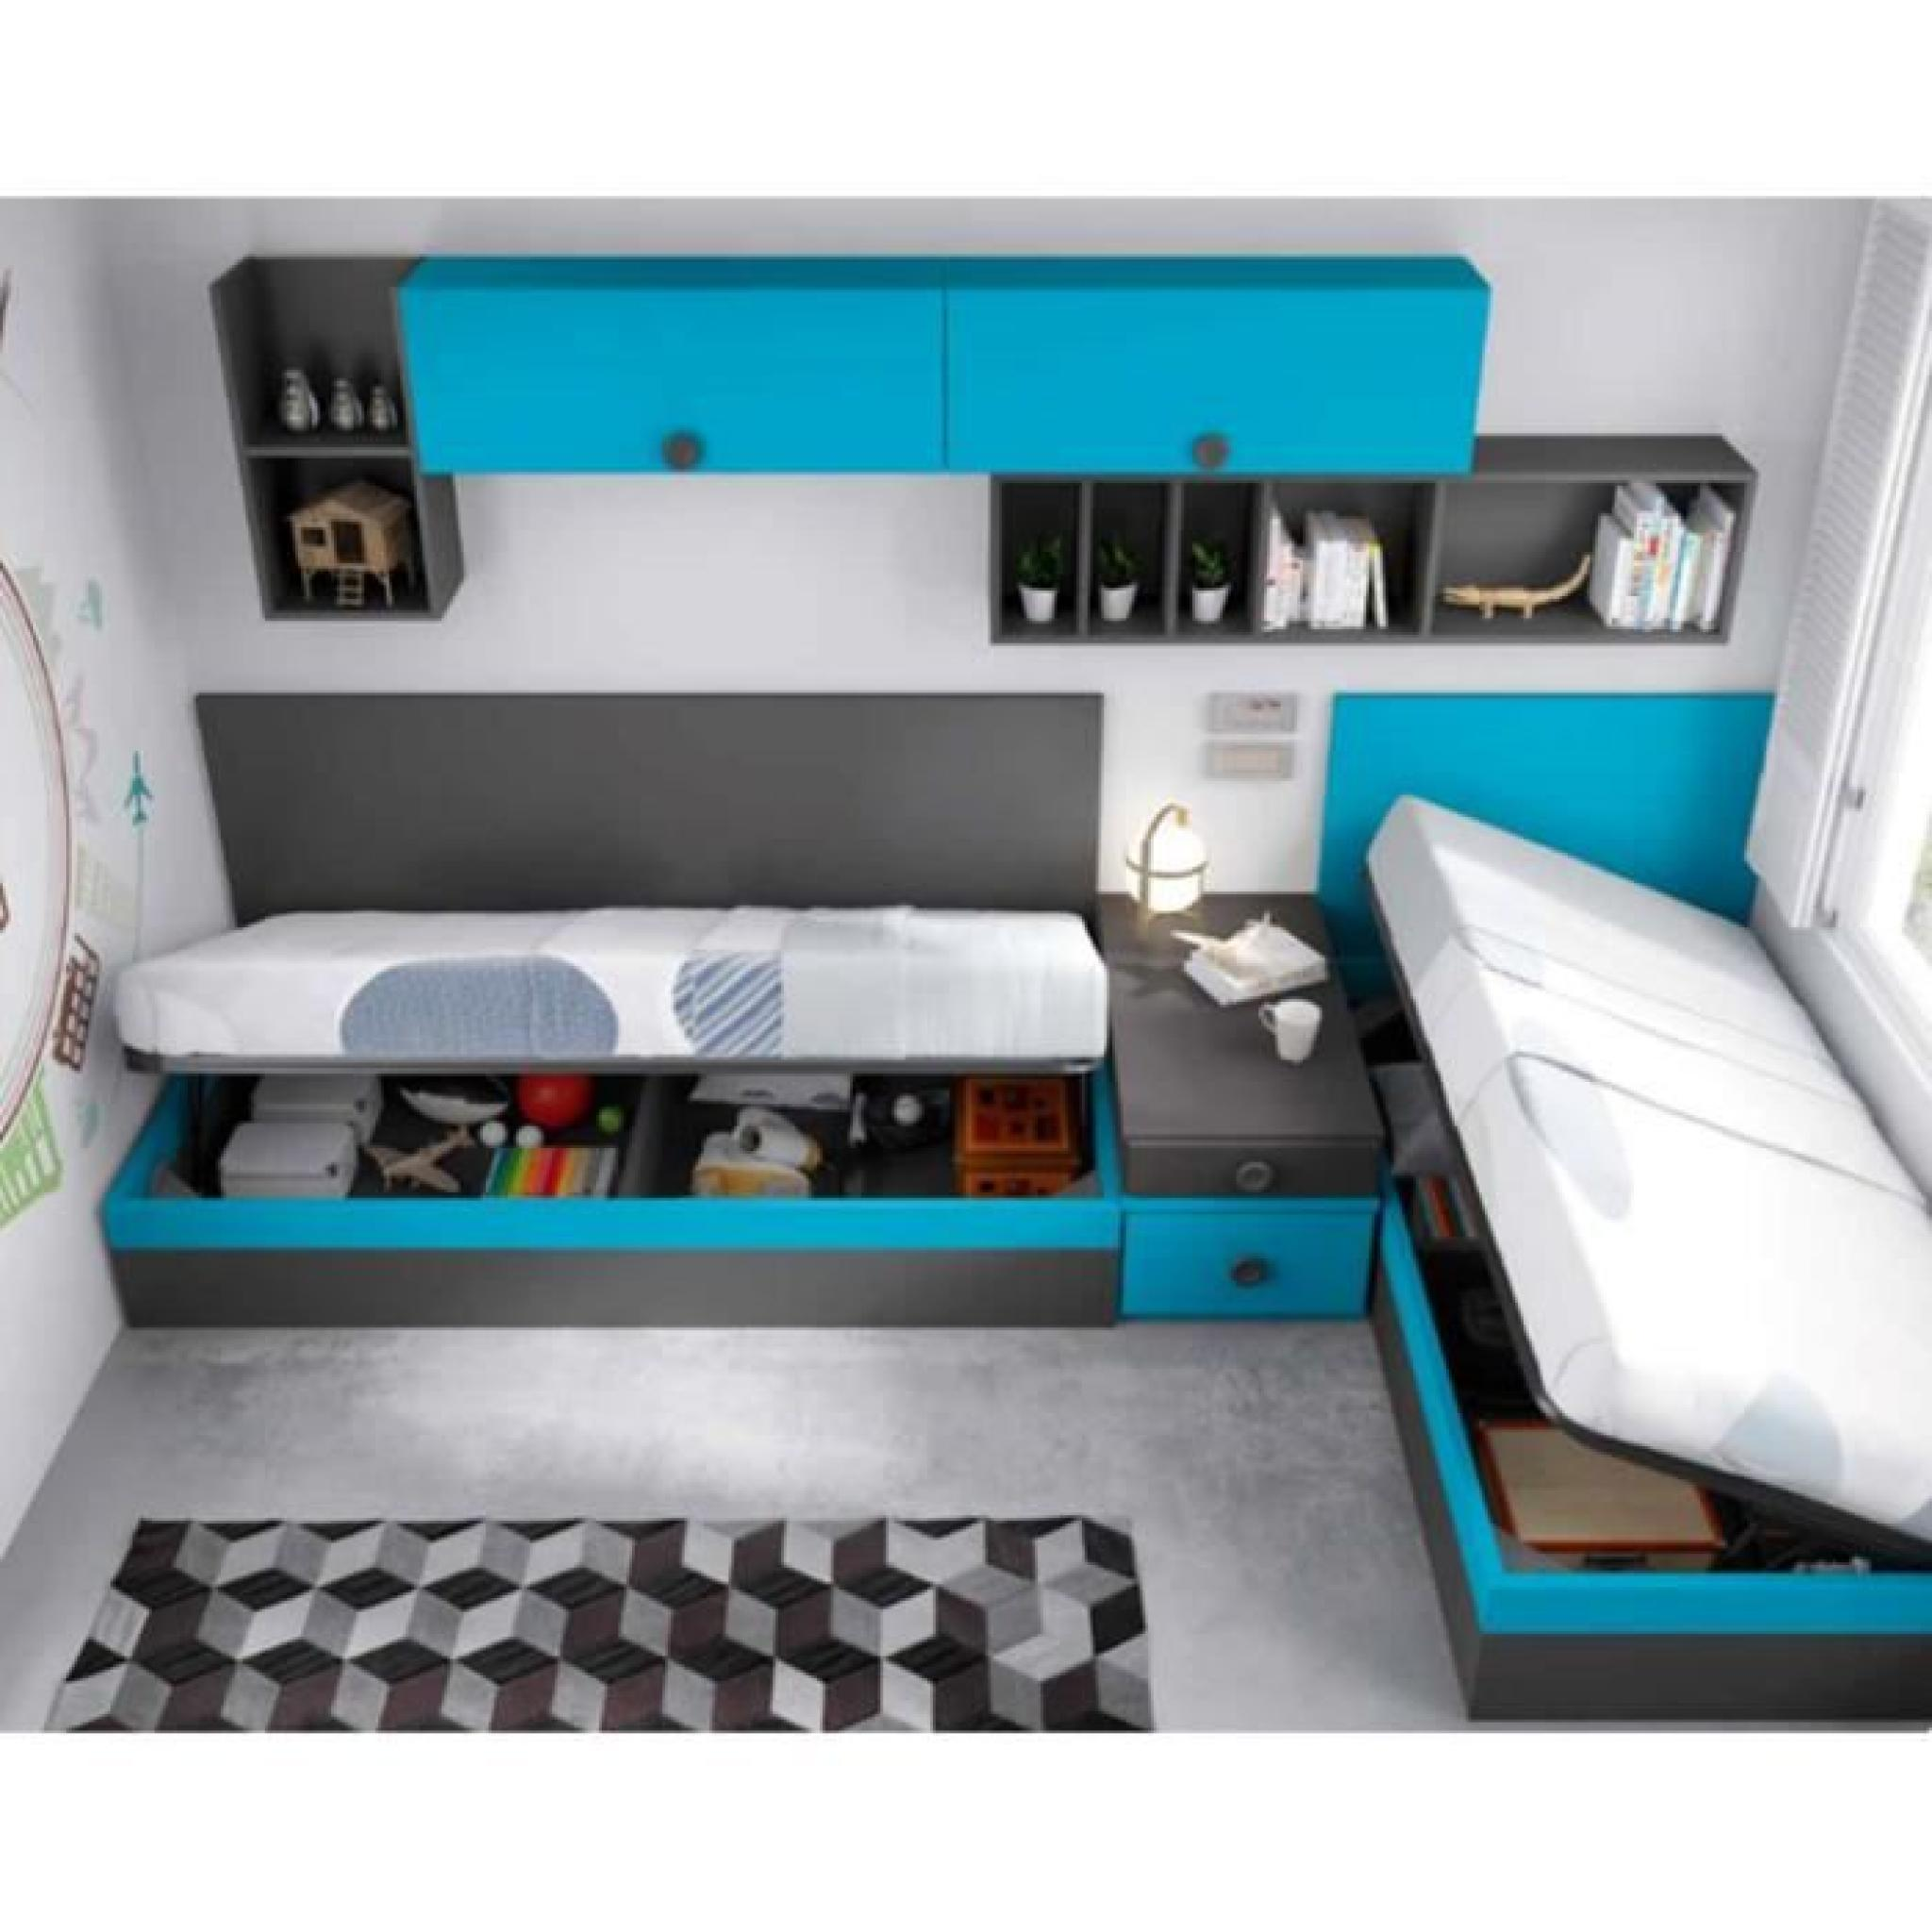 aqua lit coffre 90x190 cm rangements achat vente lit escamotable pas cher couleur et. Black Bedroom Furniture Sets. Home Design Ideas